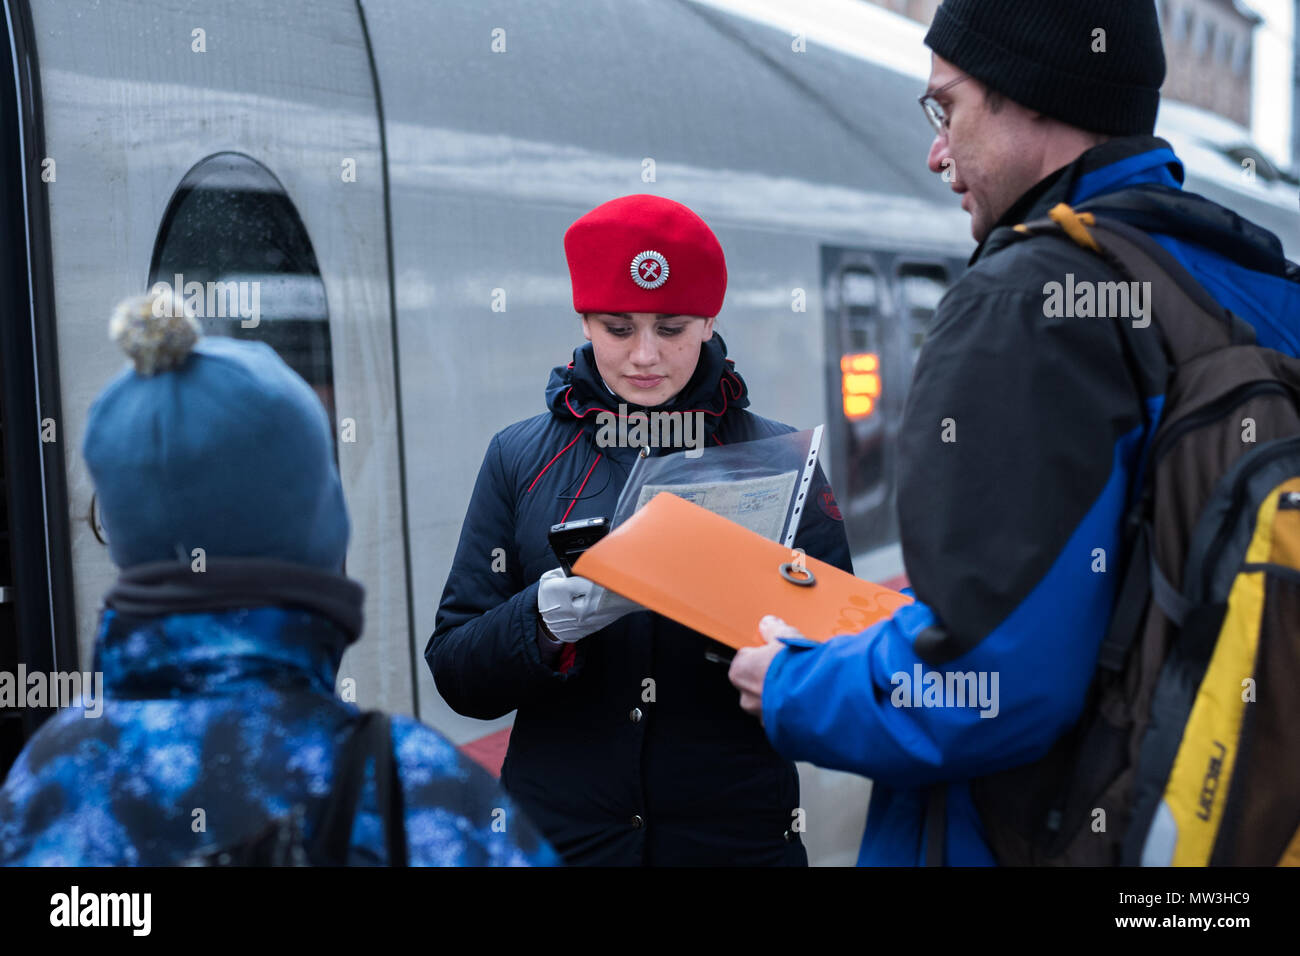 Saint Petersburg, Russia: a train conductor in a red beret of a Sapsan express train checks in a passenger with a child using electronic device. Stock Photo